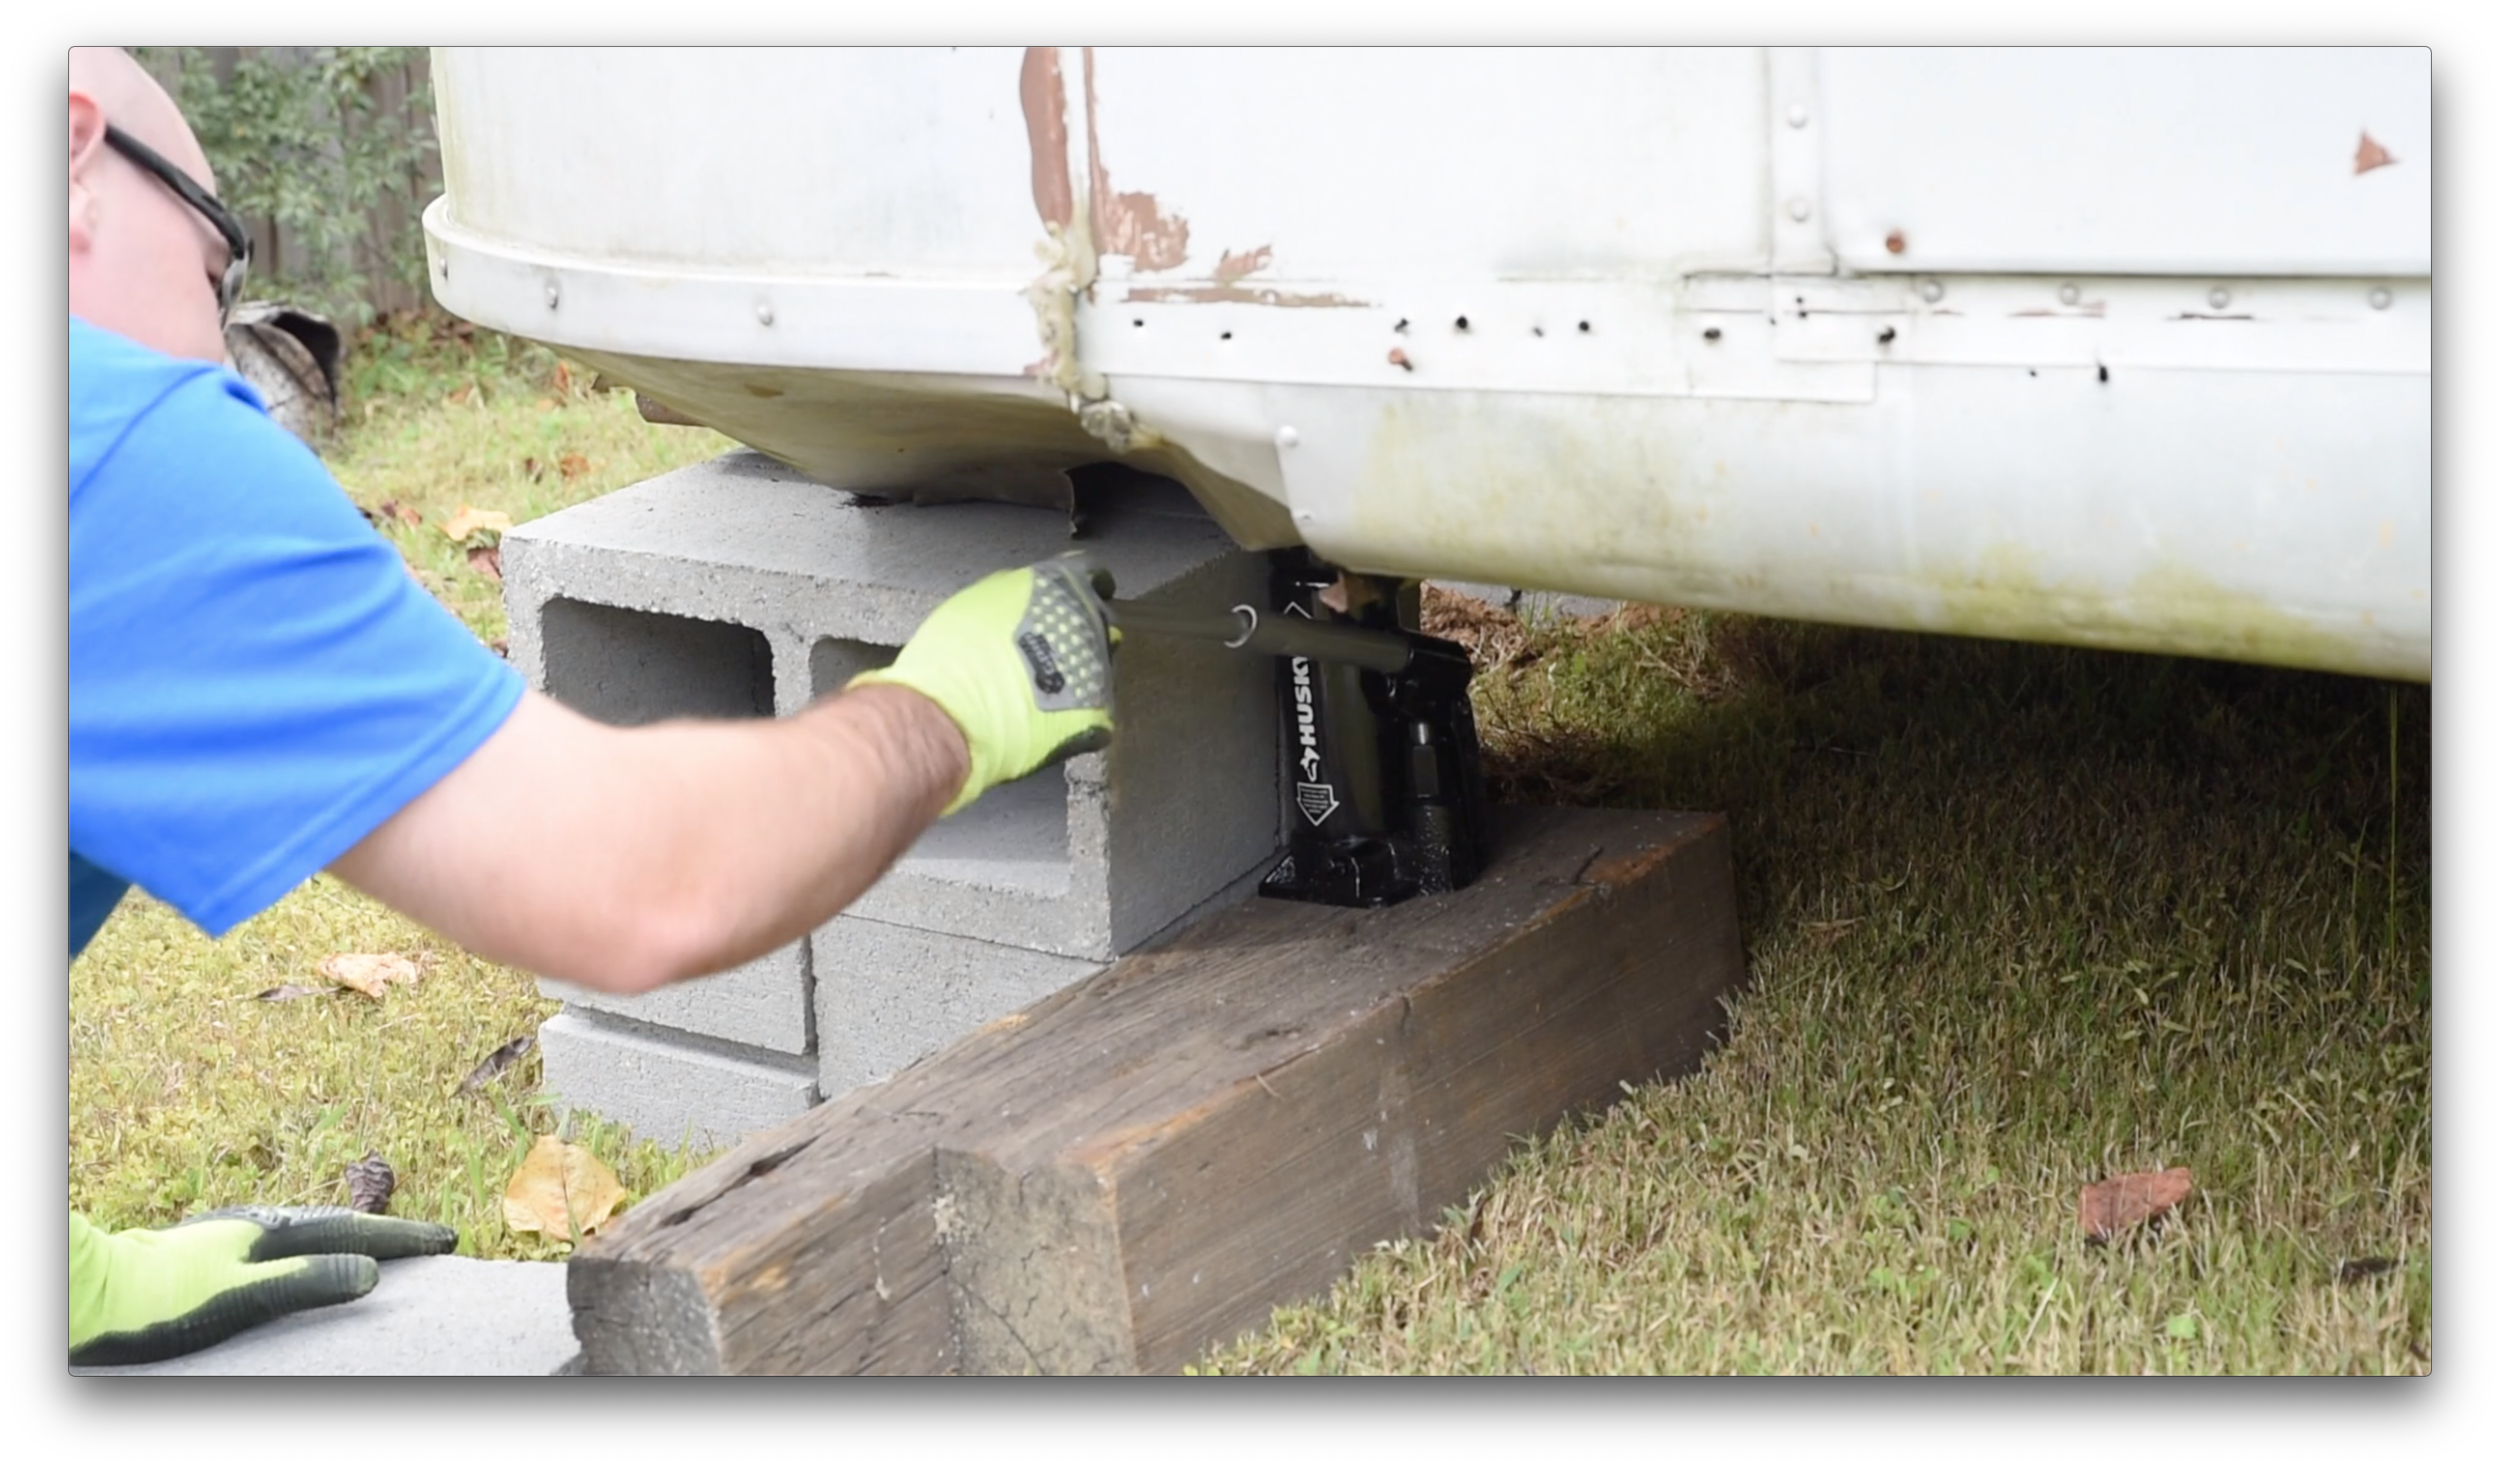 Raising the rear of the Avion Vintage Camper with a Husky 6 ton bottle jack